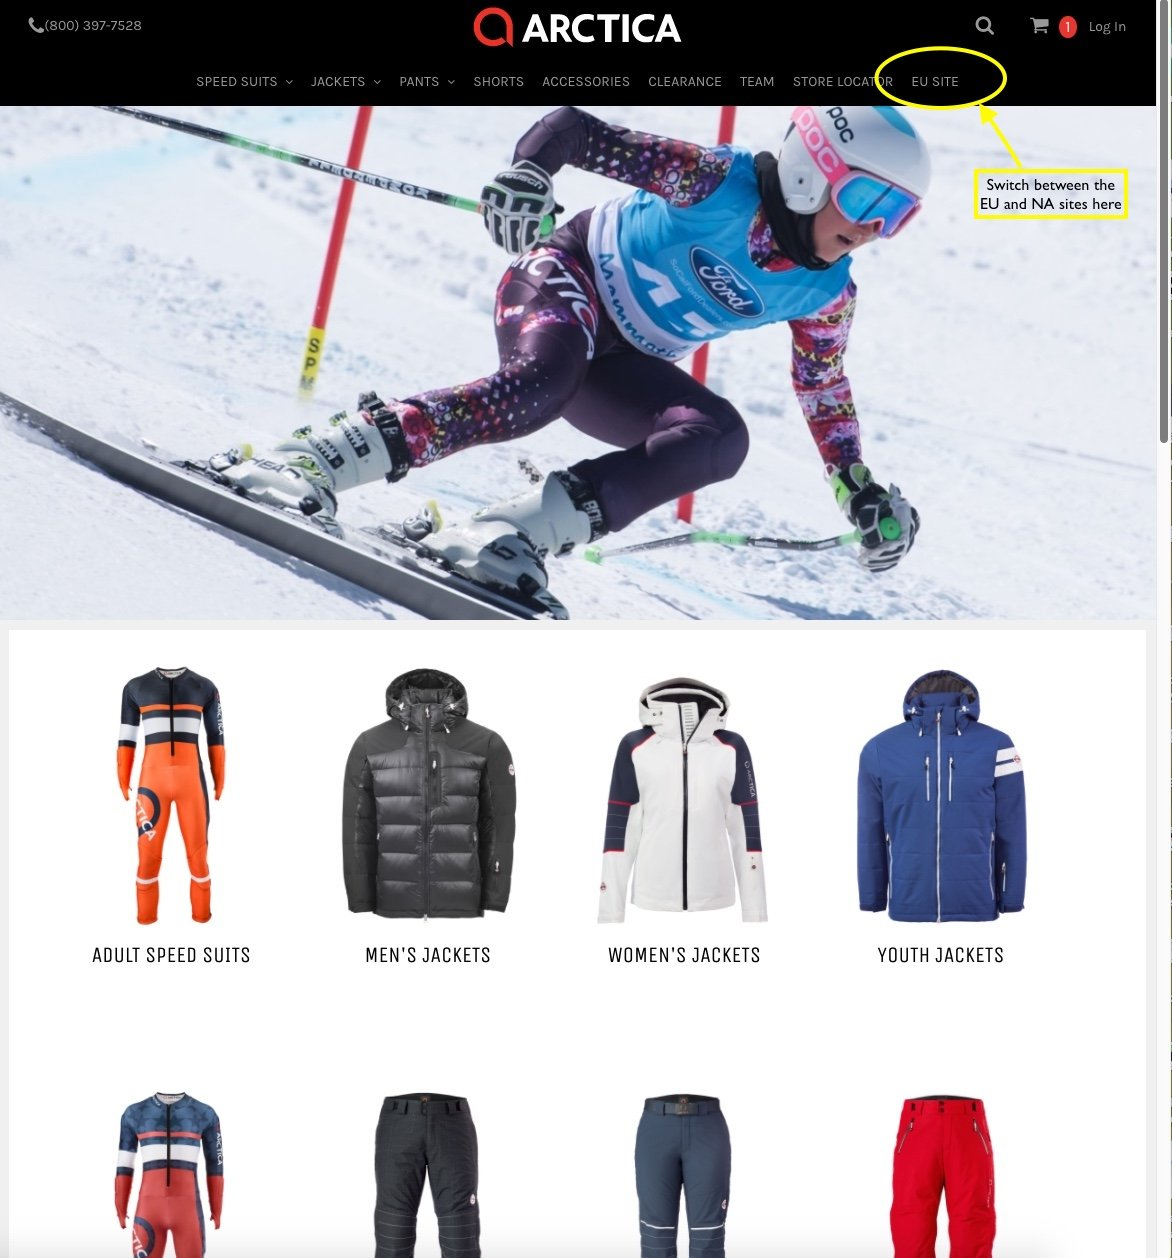 Easily switch from the Arctica NA site to the Arctica EU website to shop worldwide